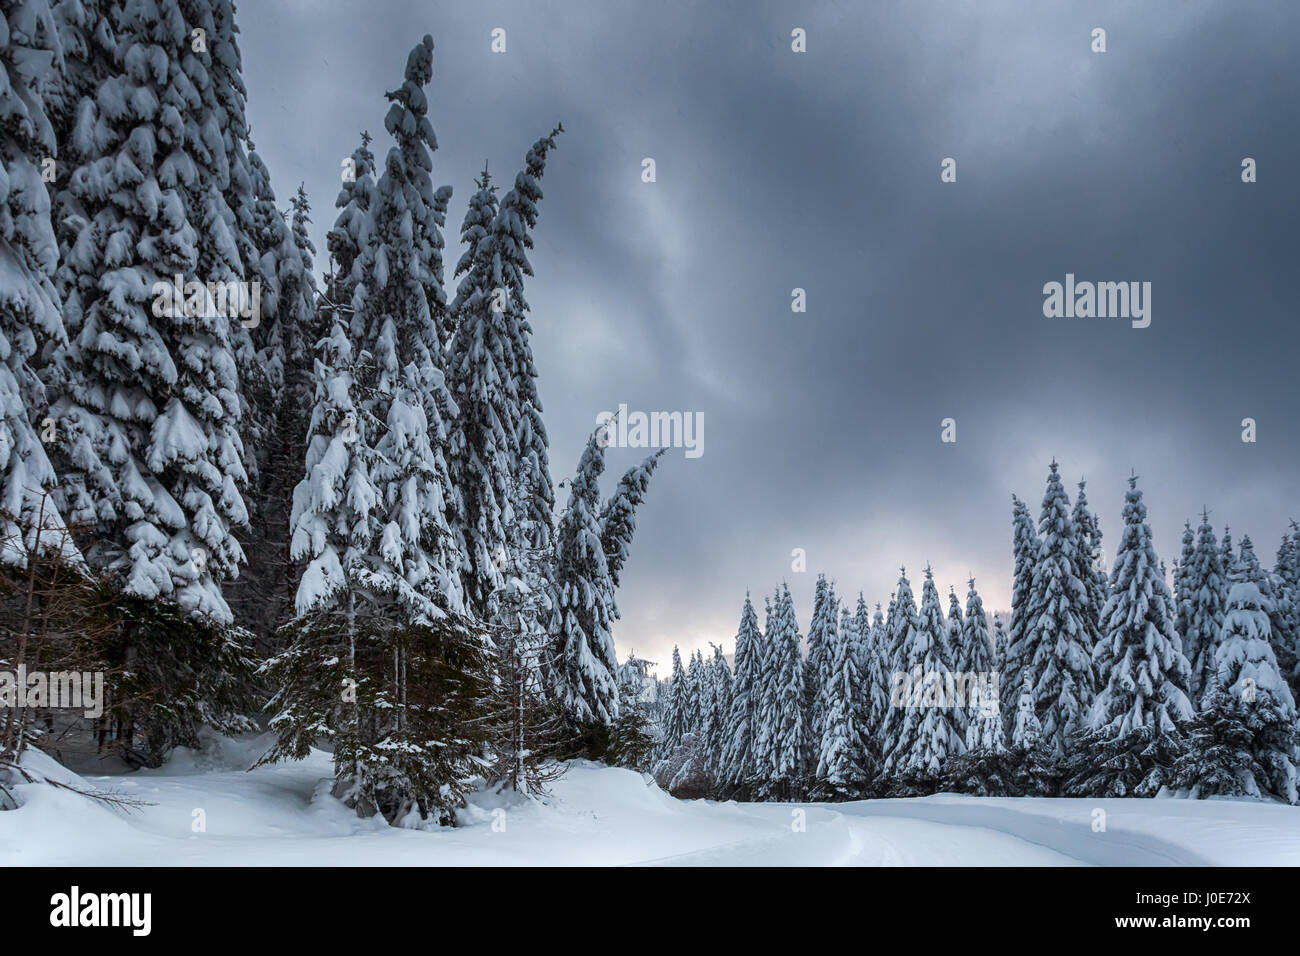 Pine forest covered in snow at dusk - Stock Image